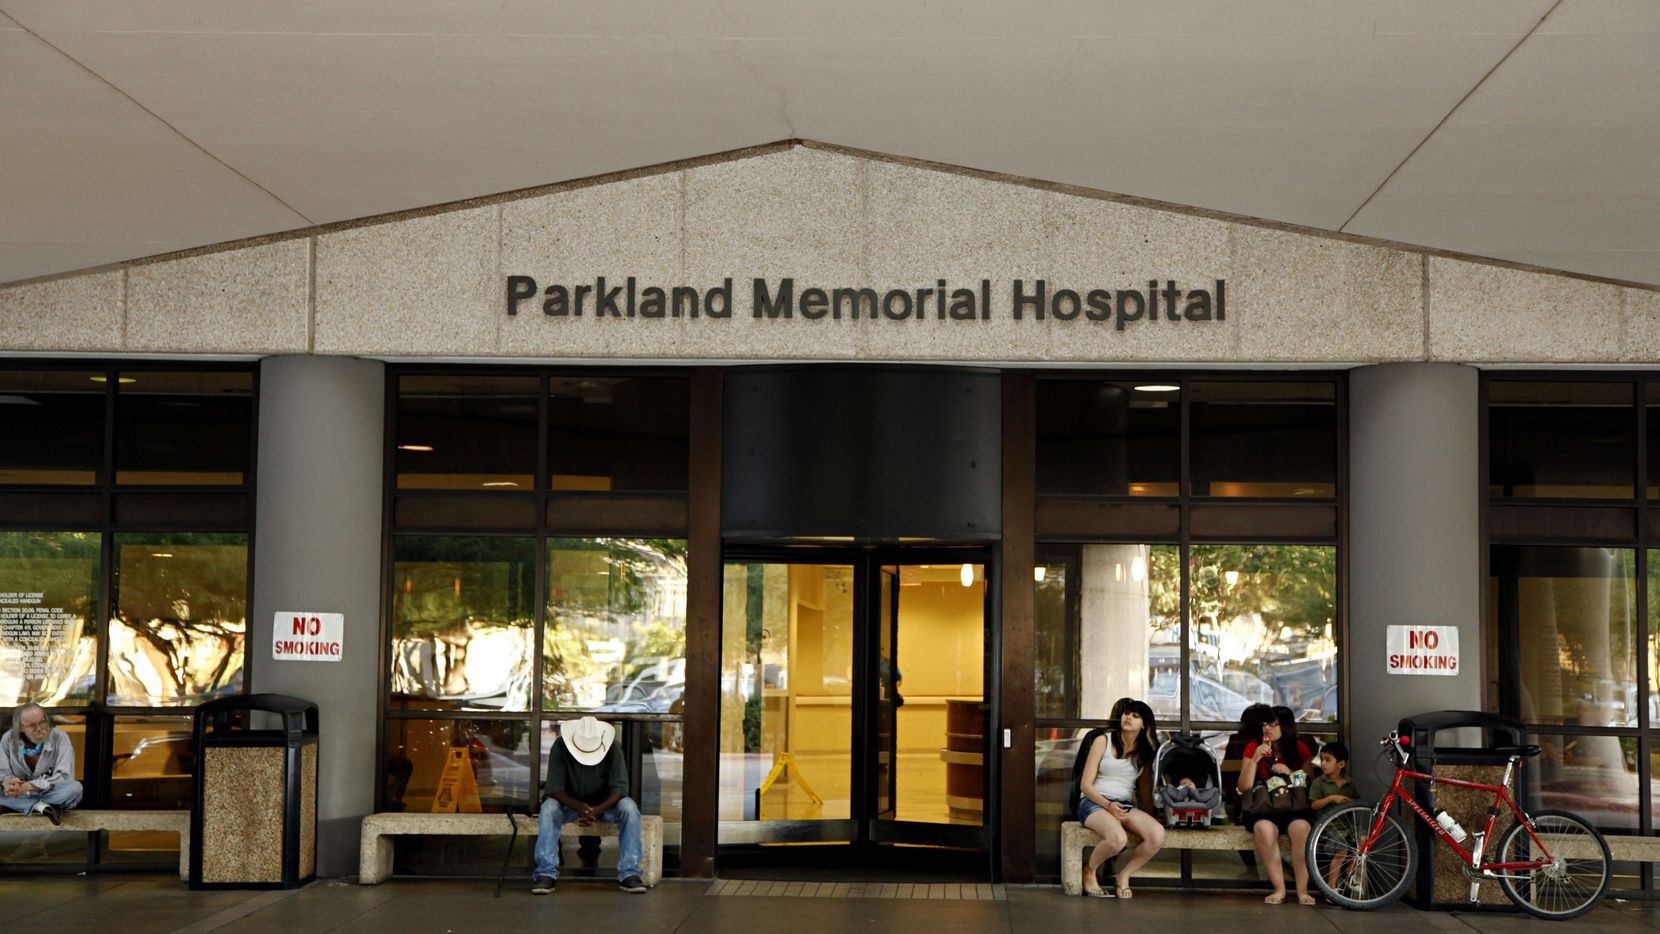 Parkland Memorial Hospital said the patient-gagging incident in the psychiatric emergency room was discovered on April 8 during a routine review of security video from March 16. Parkland notified the Texas health department within a day, it said, in compliance with regulations.